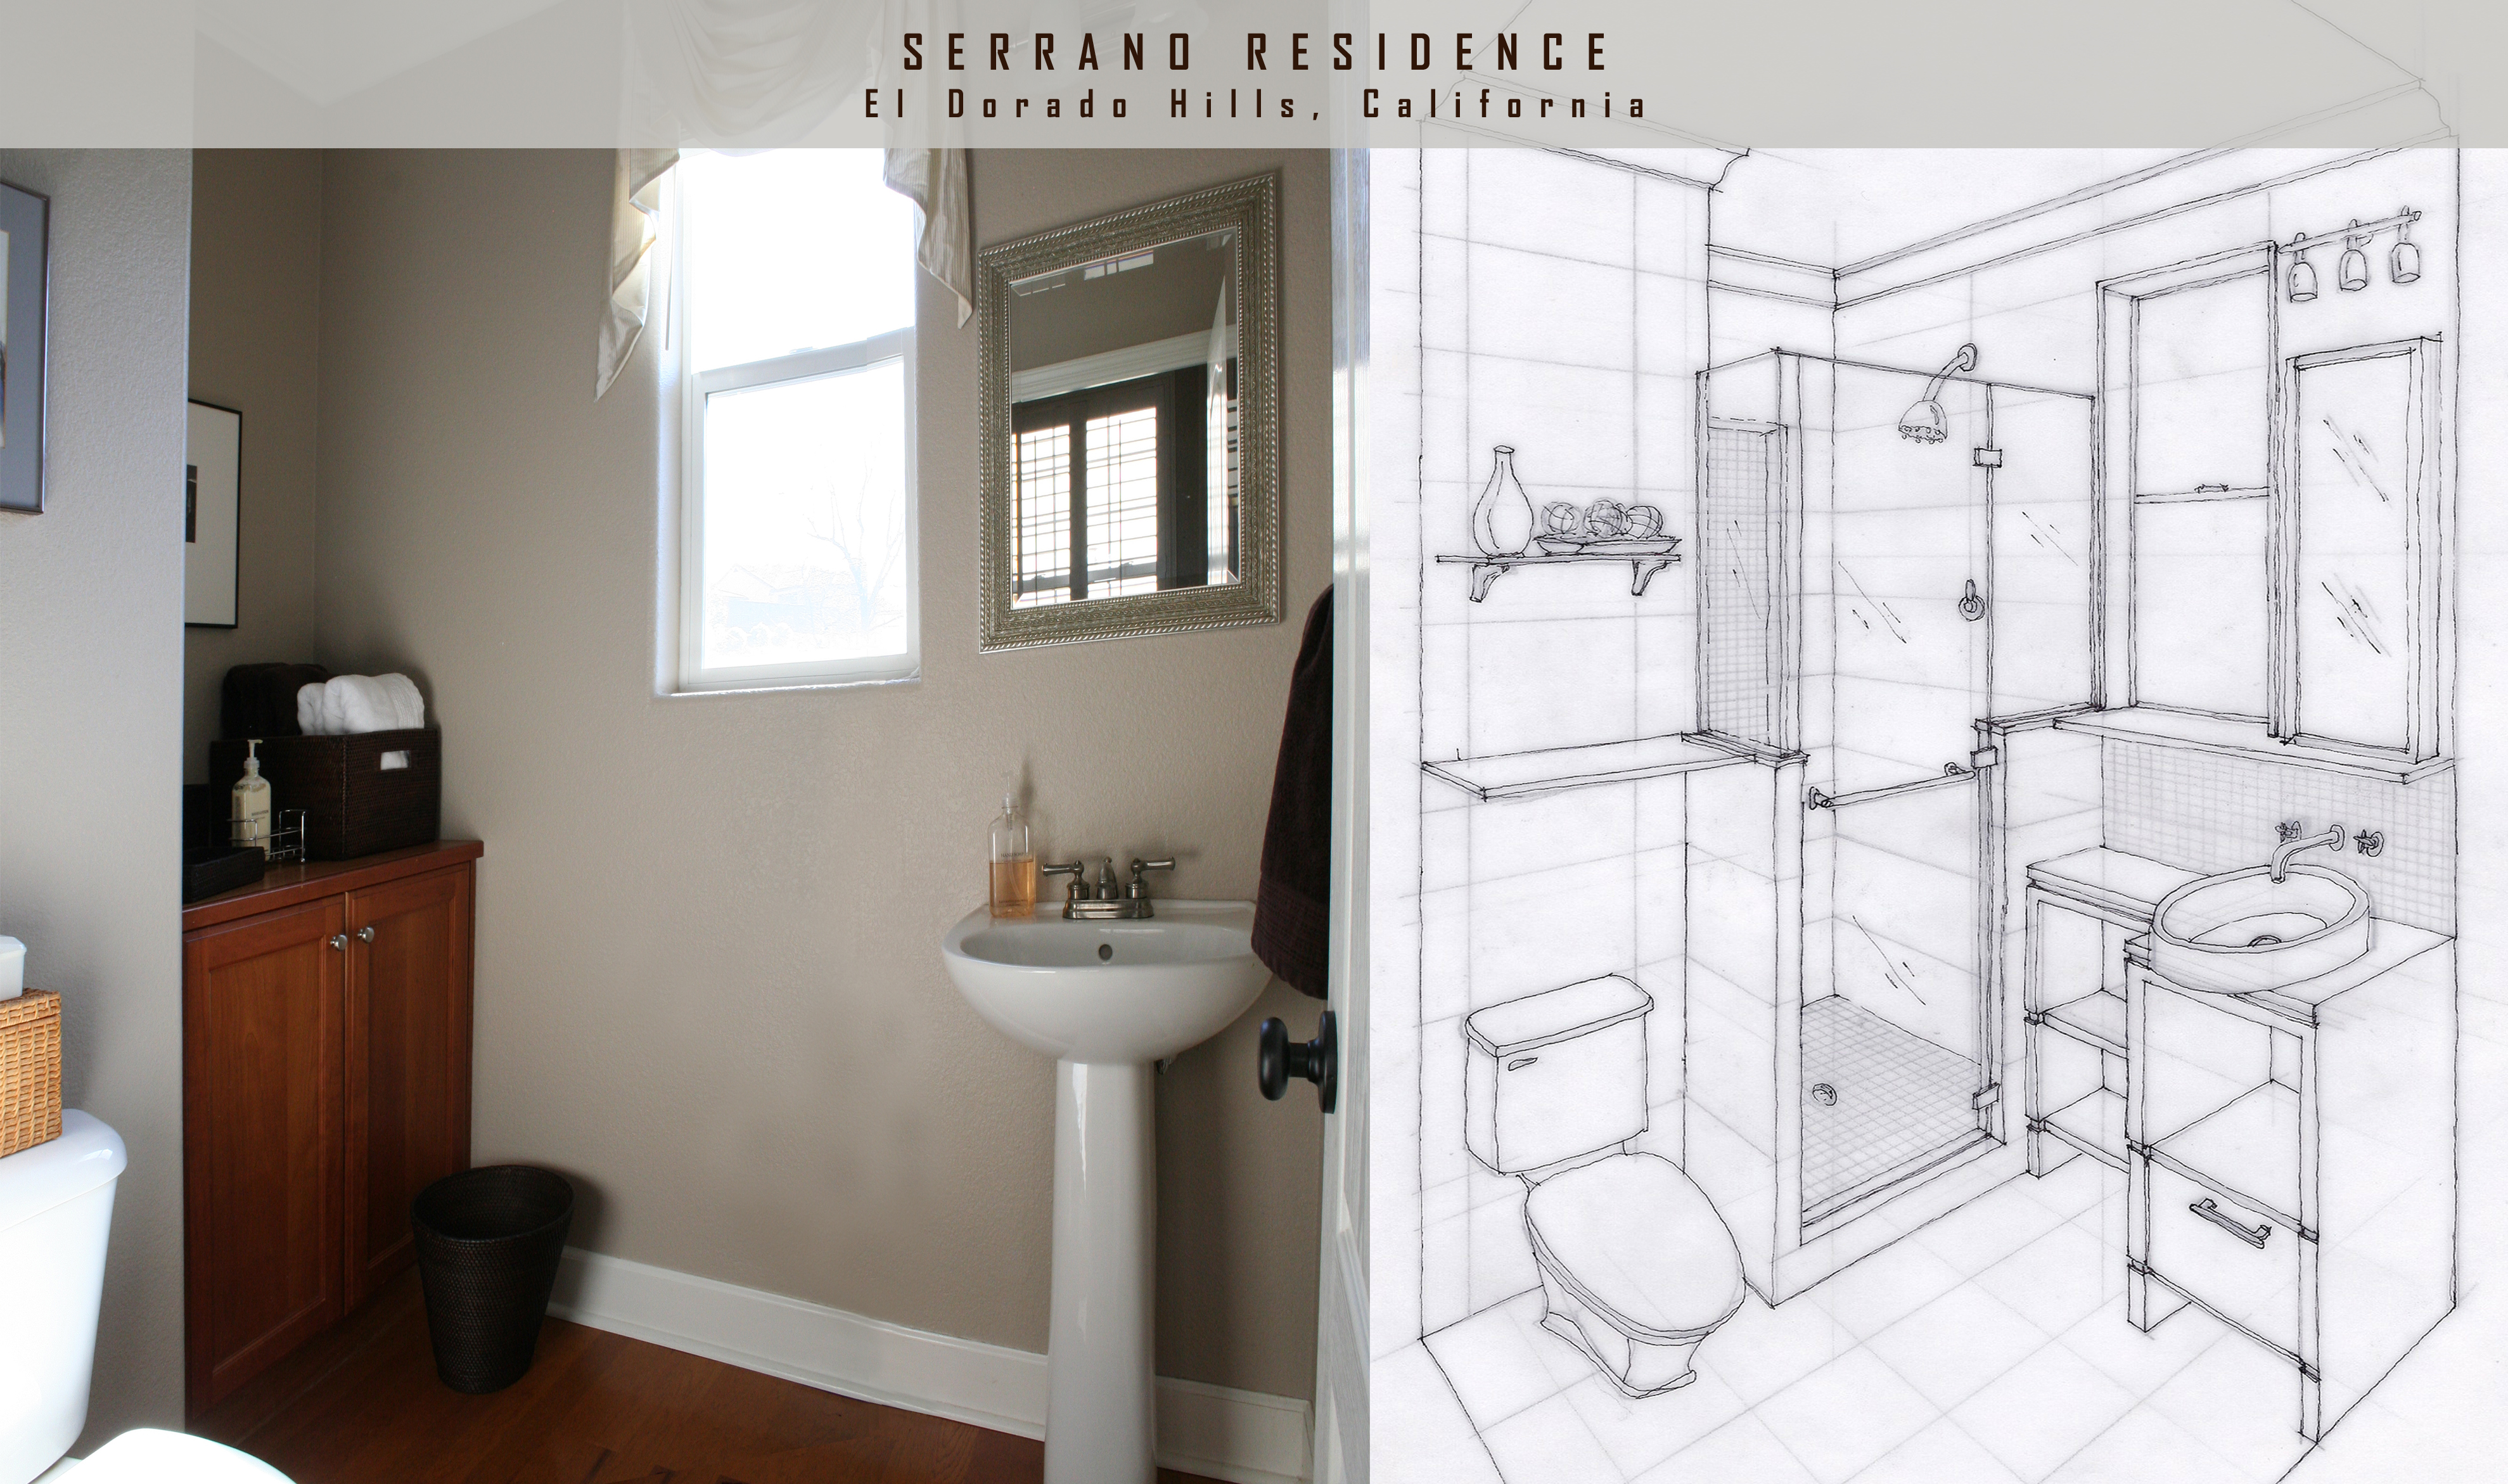 Bathroom drawing design - Bathroom Design Concept In Which A Shower And Vanity Are Added